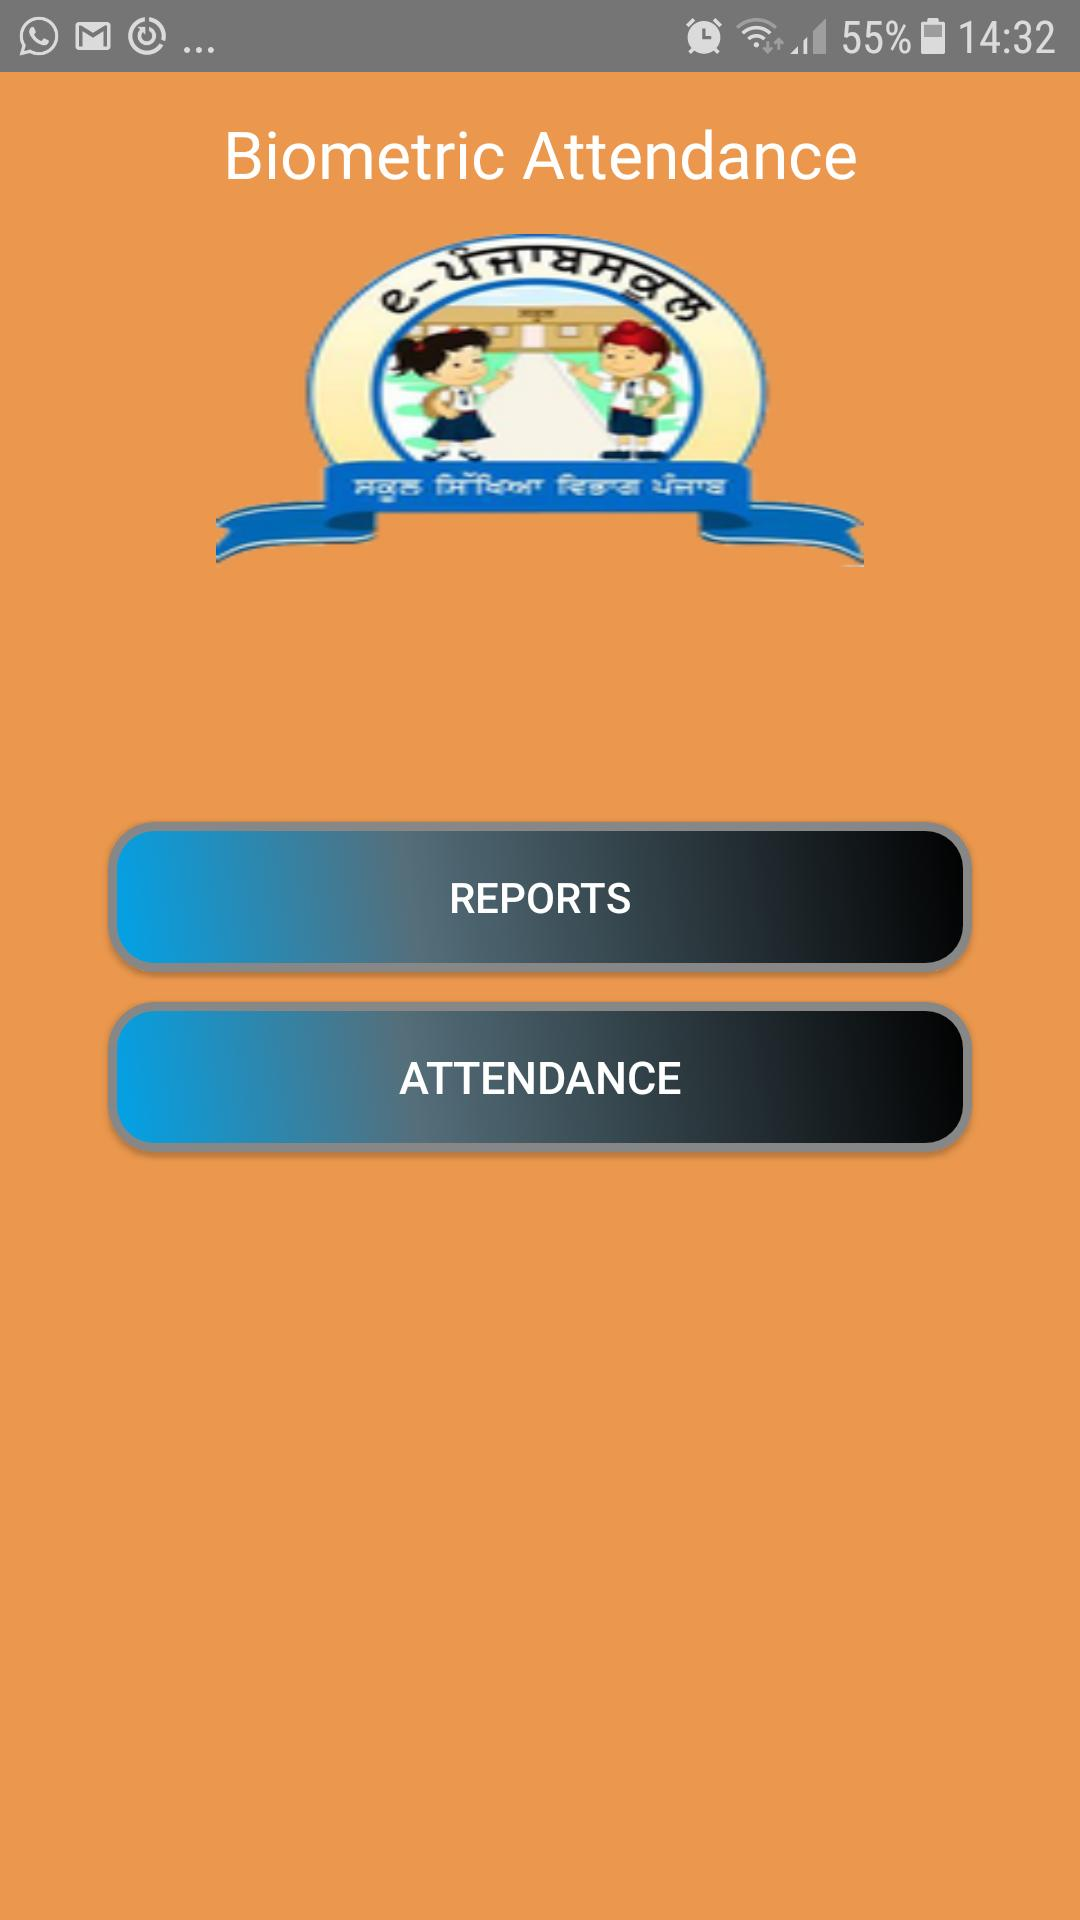 Biometric Attendance (Morpho) for Android - APK Download